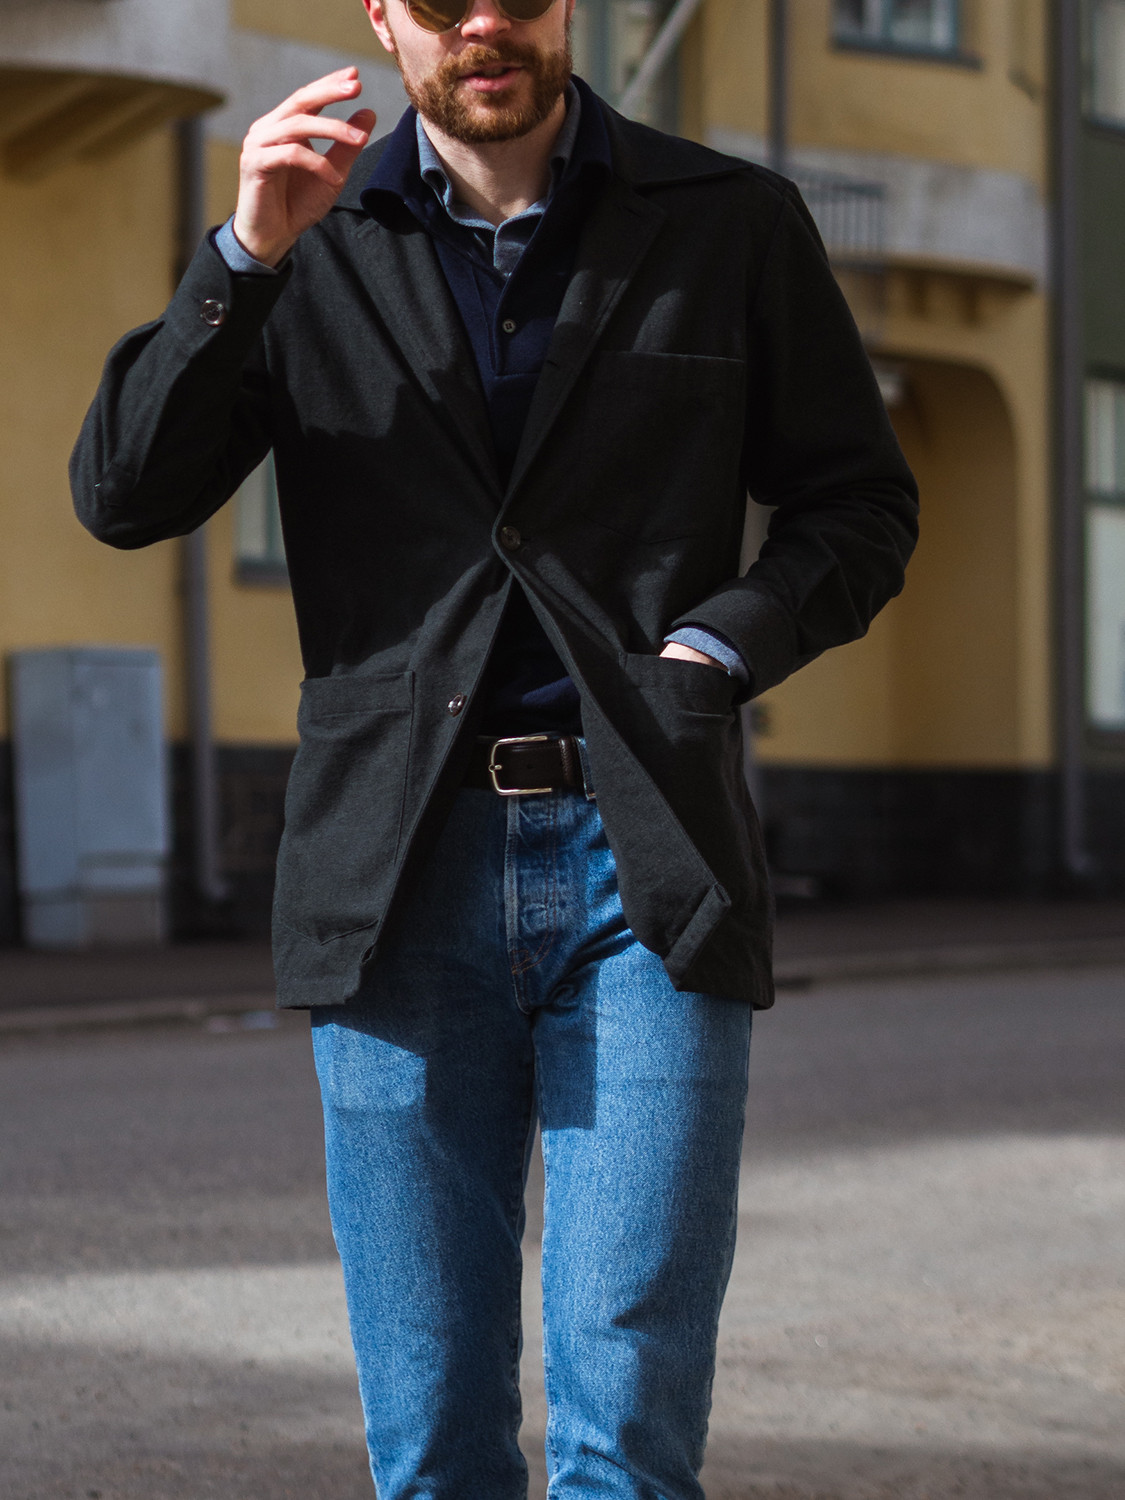 Men's outfit idea for 2021 with black unstructured blazer, mid blue jeans, black sunglasses, lace-up leather boots. Suitable for spring and autumn.